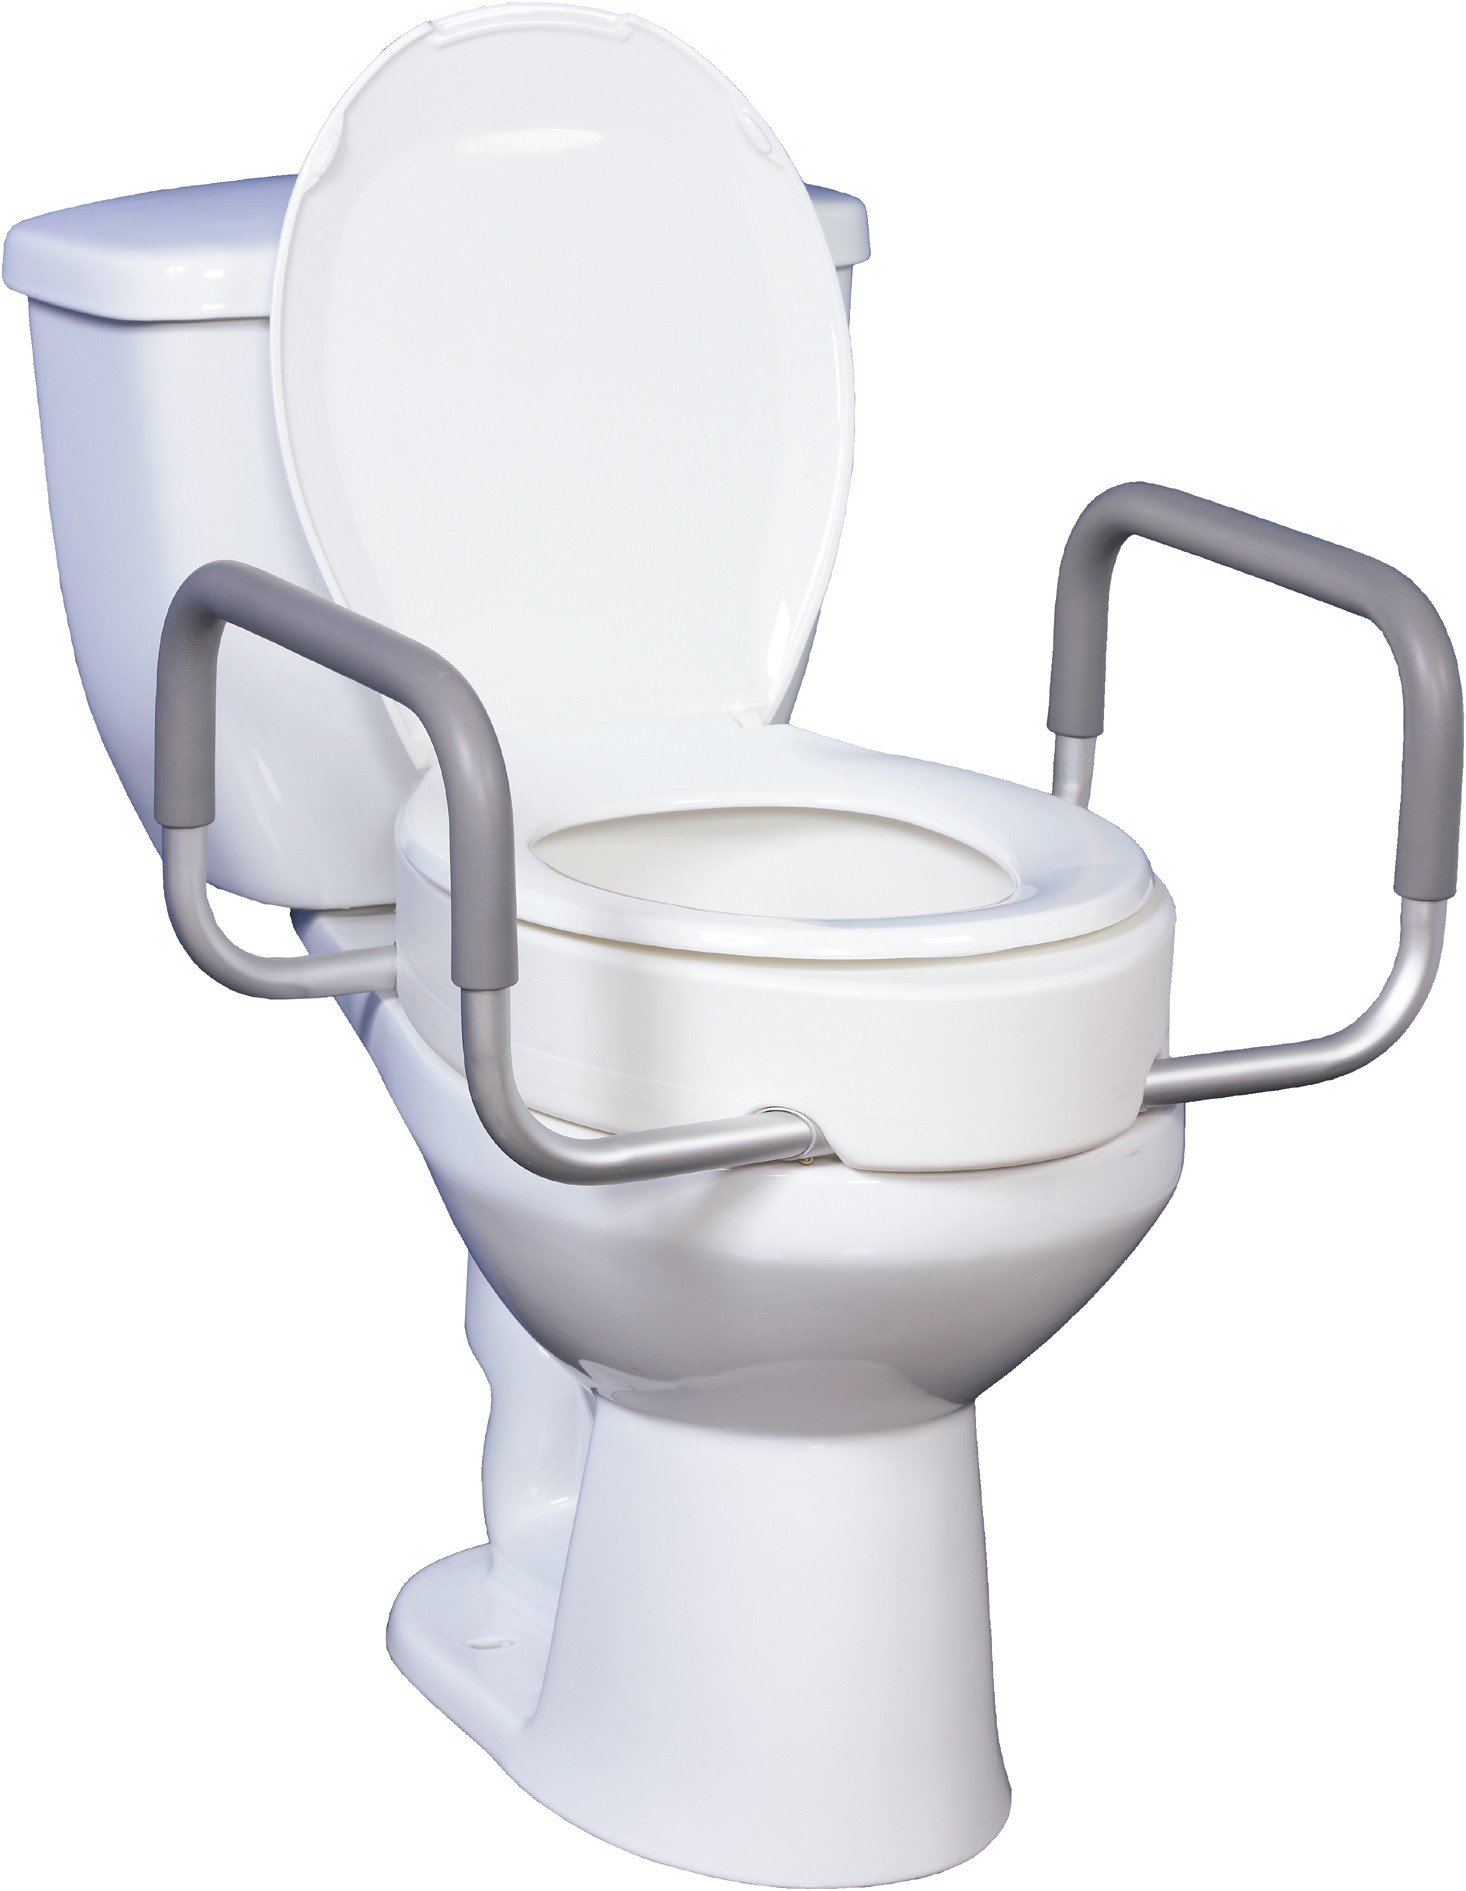 handicap potty chair tall adjustable office toilet seat riser with removable arms bathroom safety